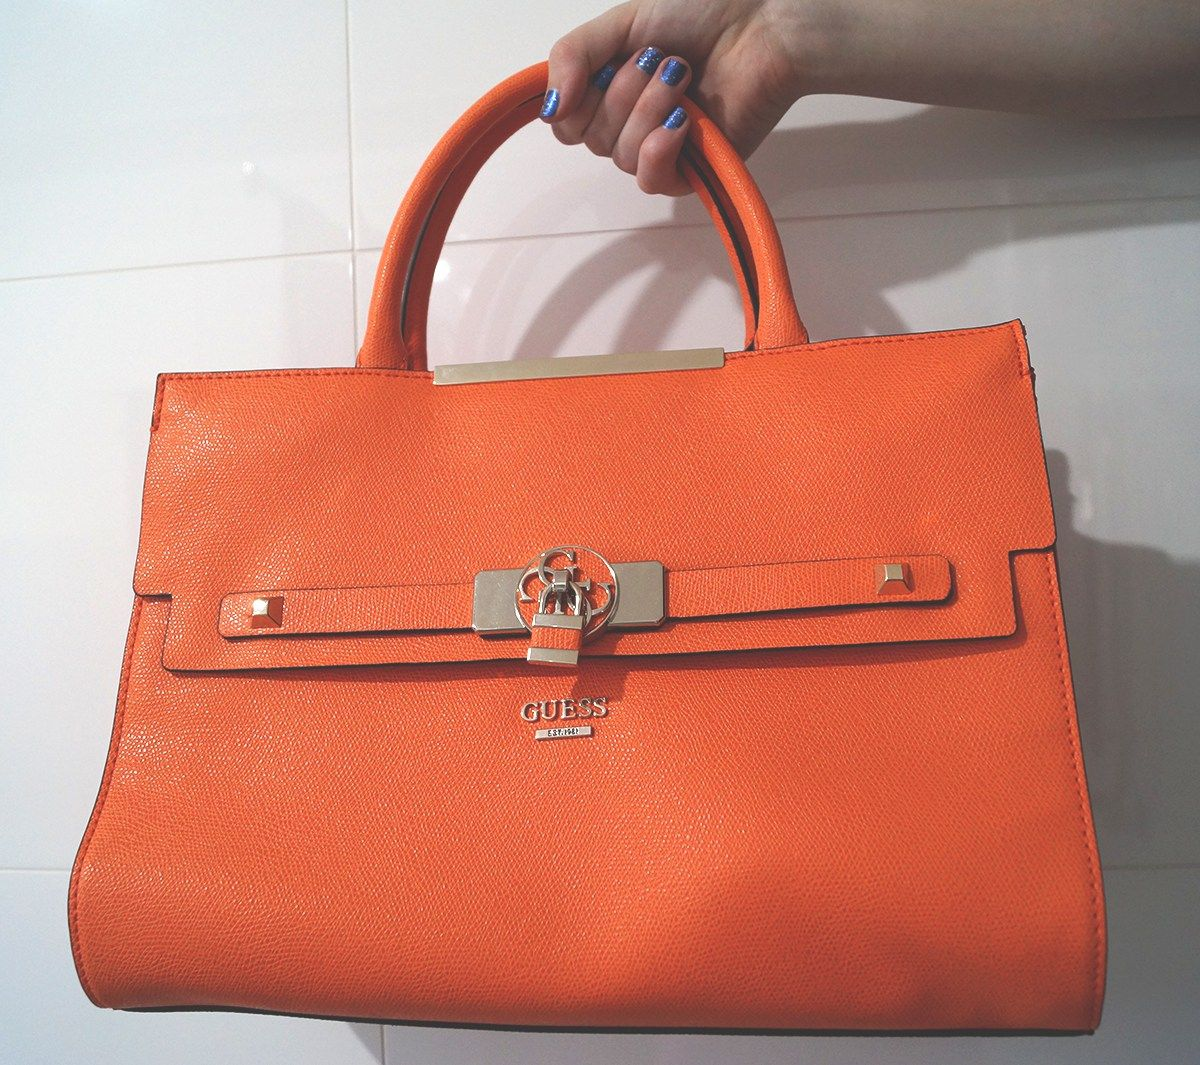 guess, loveguess, guess bag, orange, satchel, handbag | In My ...